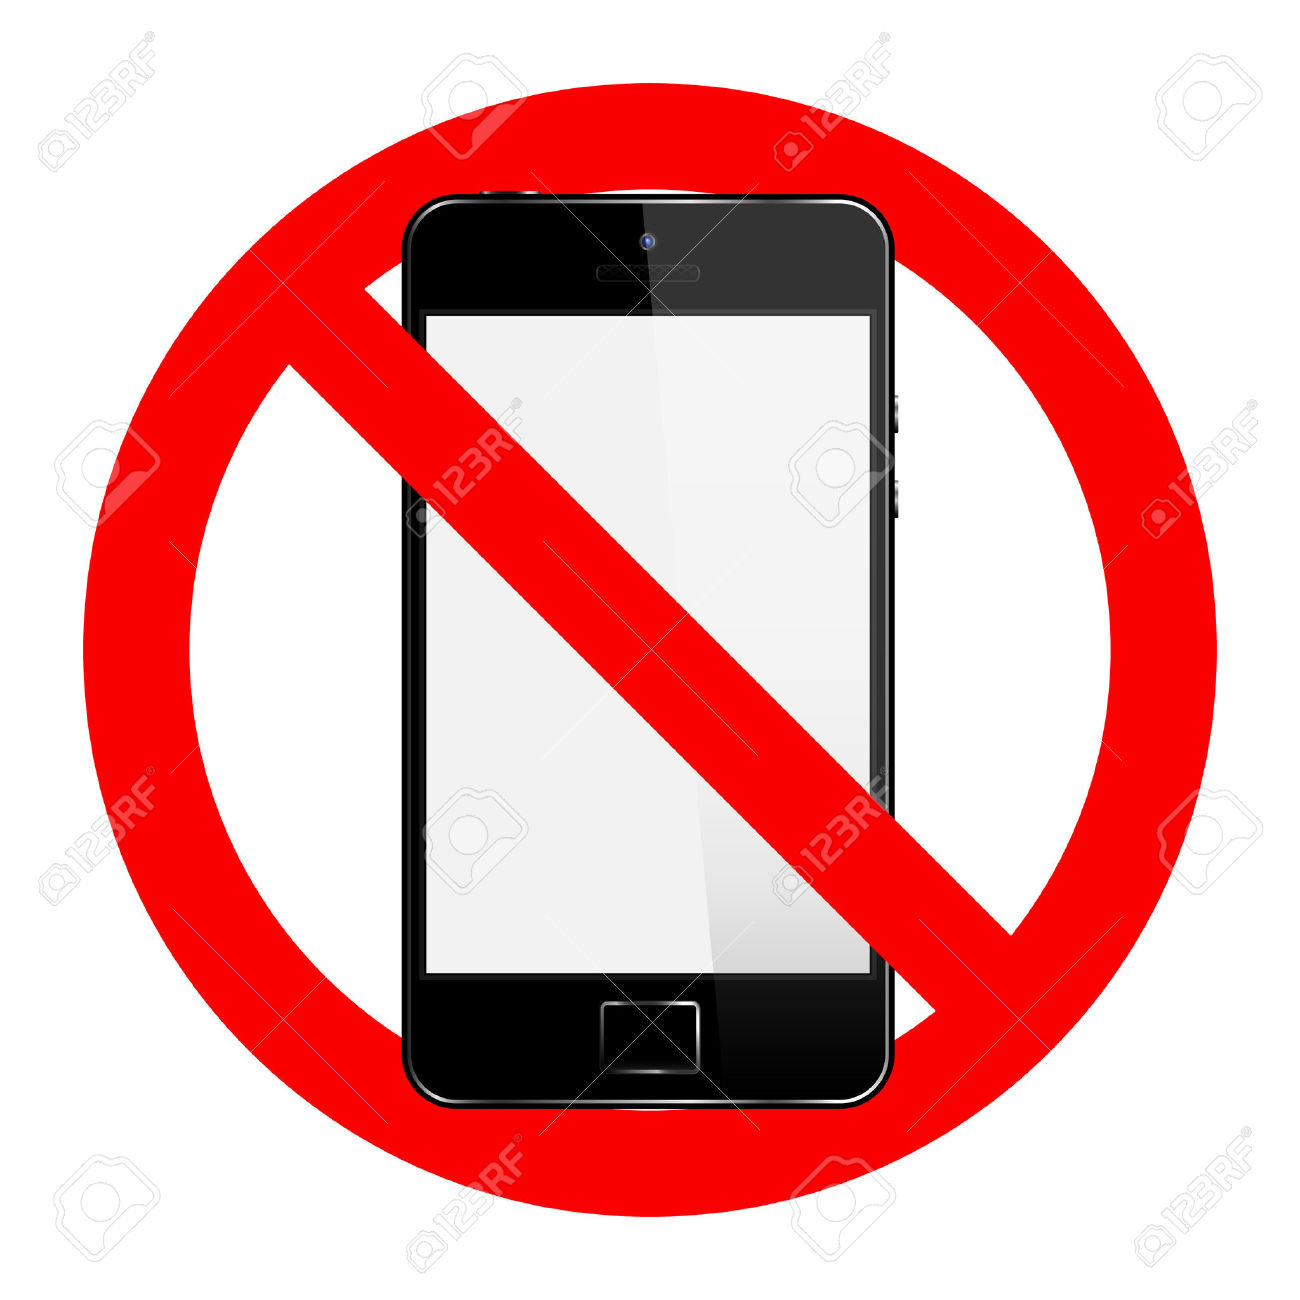 No Cell Phone Sign Royalty Free Cliparts, Vectors, And Stock.